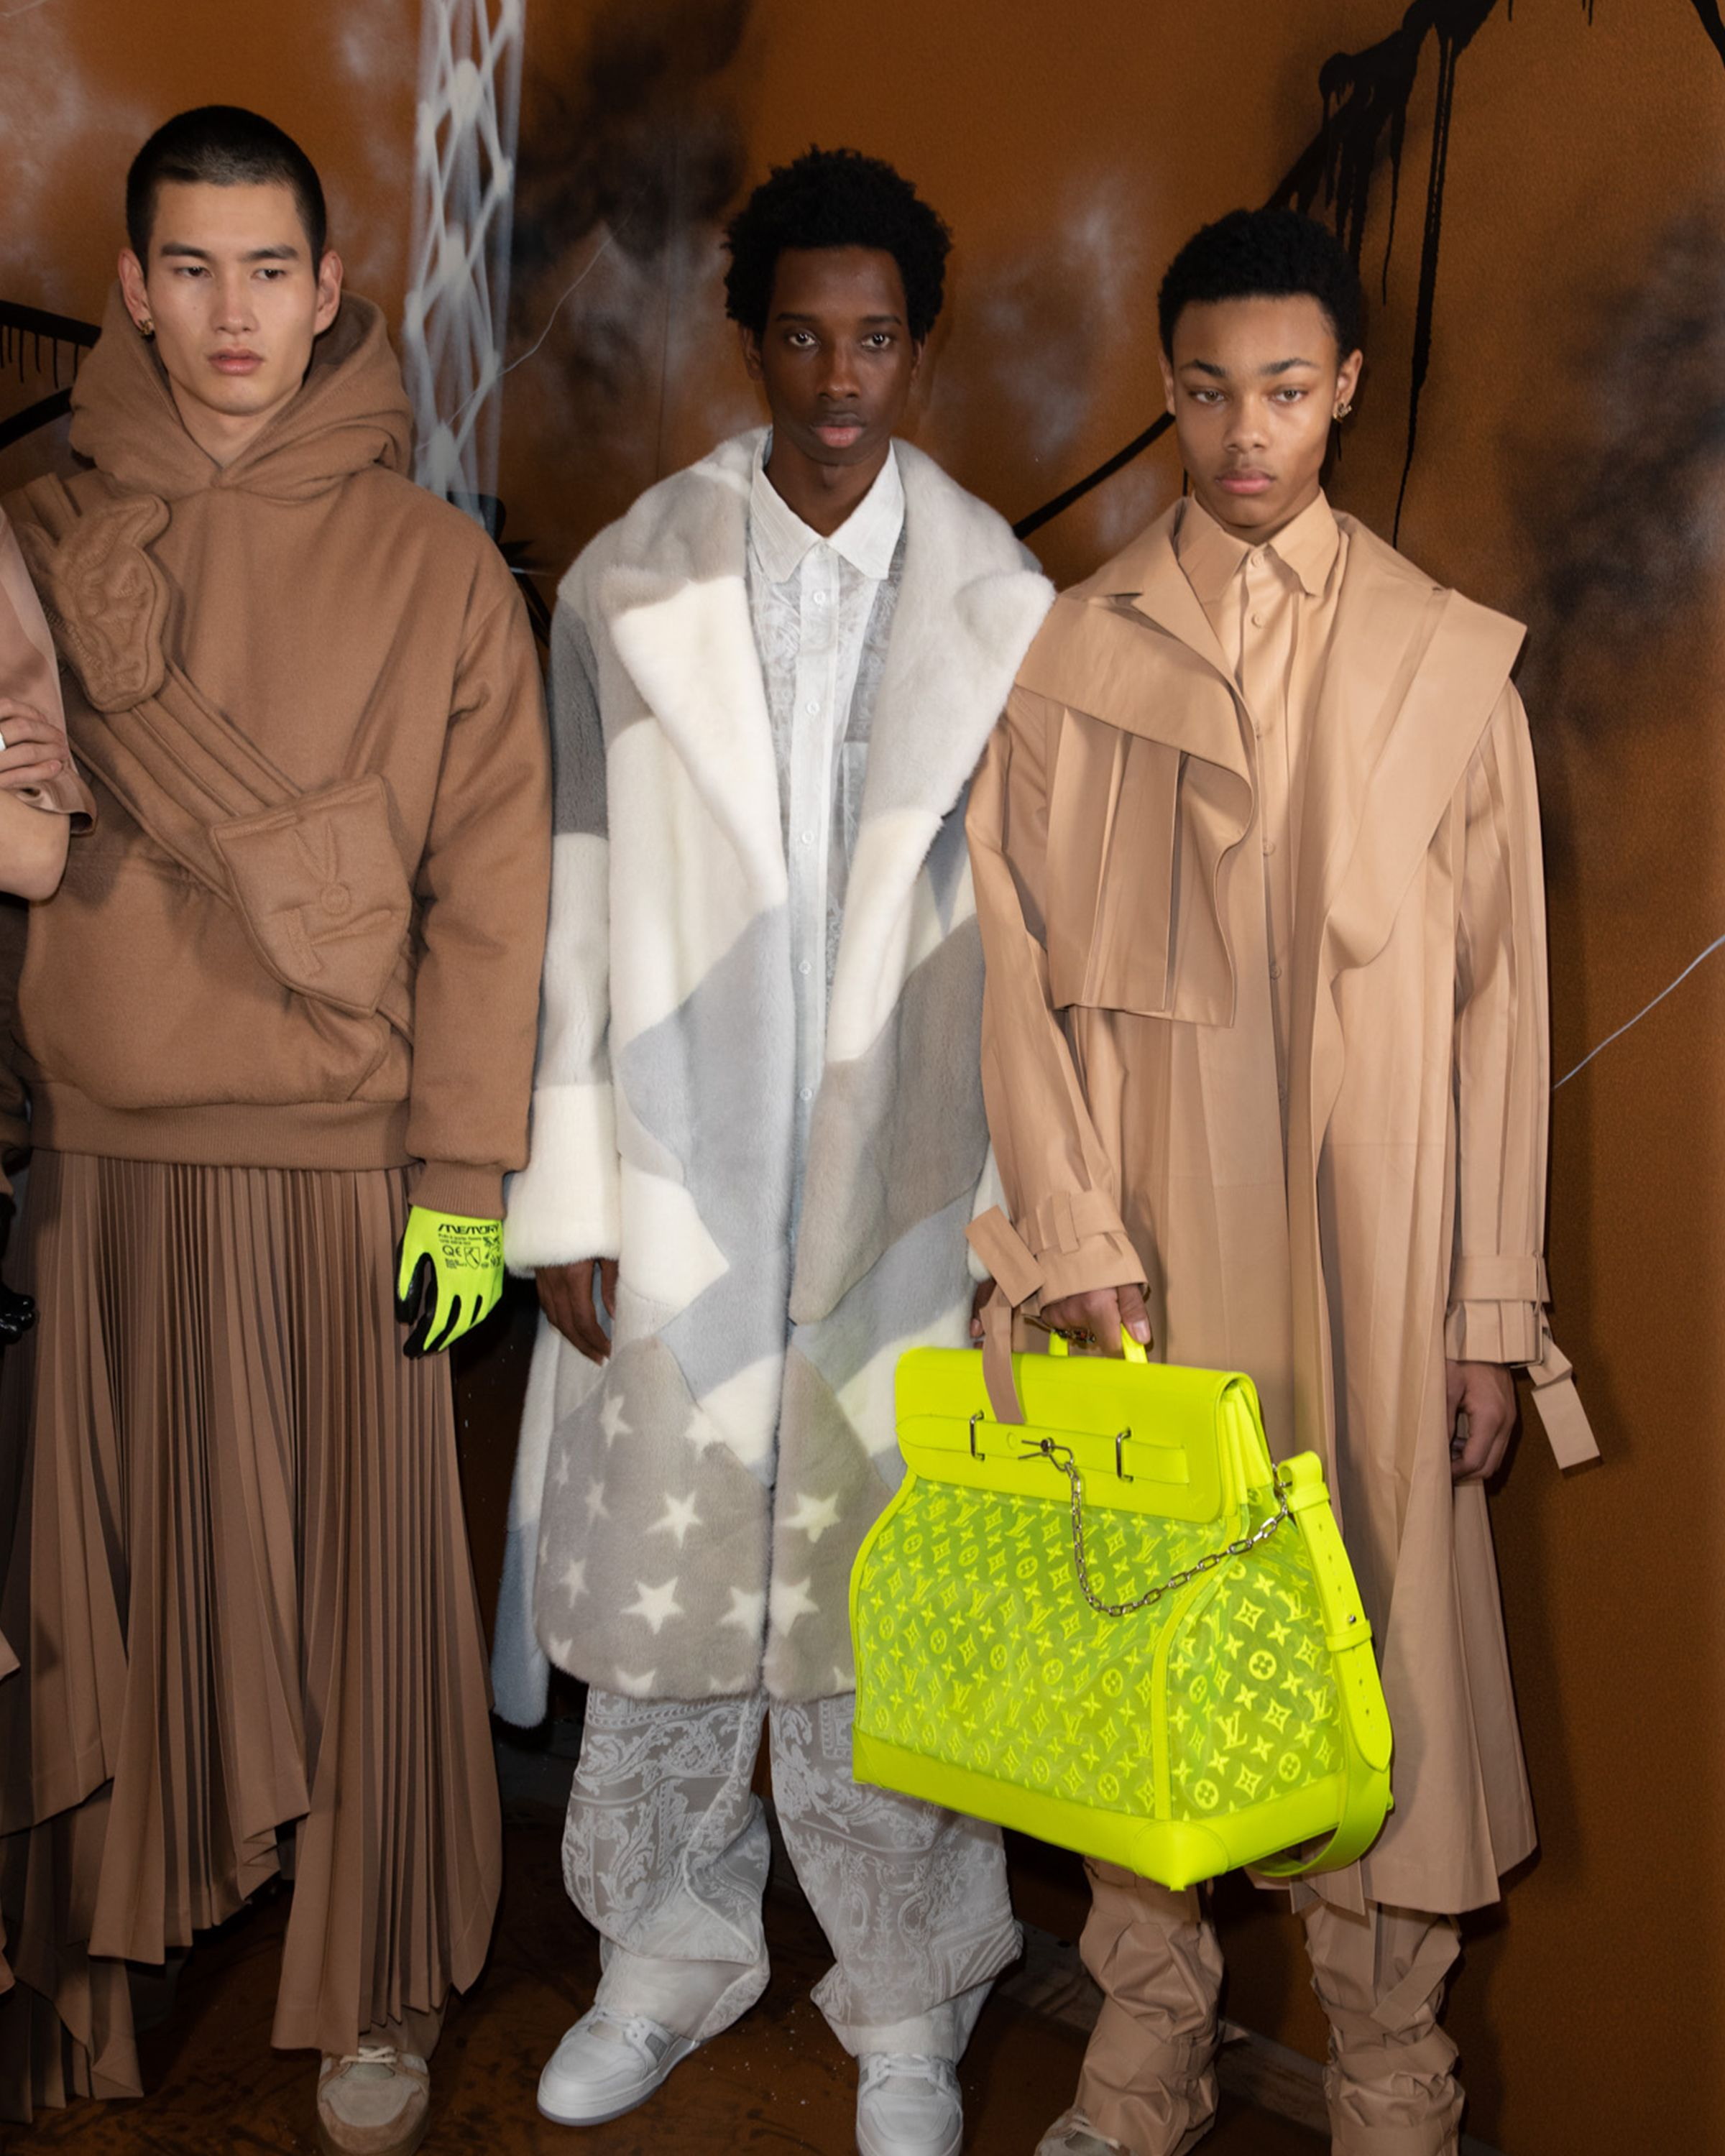 Backstage At The Louis Vuitton Men S Fall Winter 2019 Fashion Show By Virgil Abloh Presented In Paris France Louis Vuitton Men Lv Men Neon Fashion